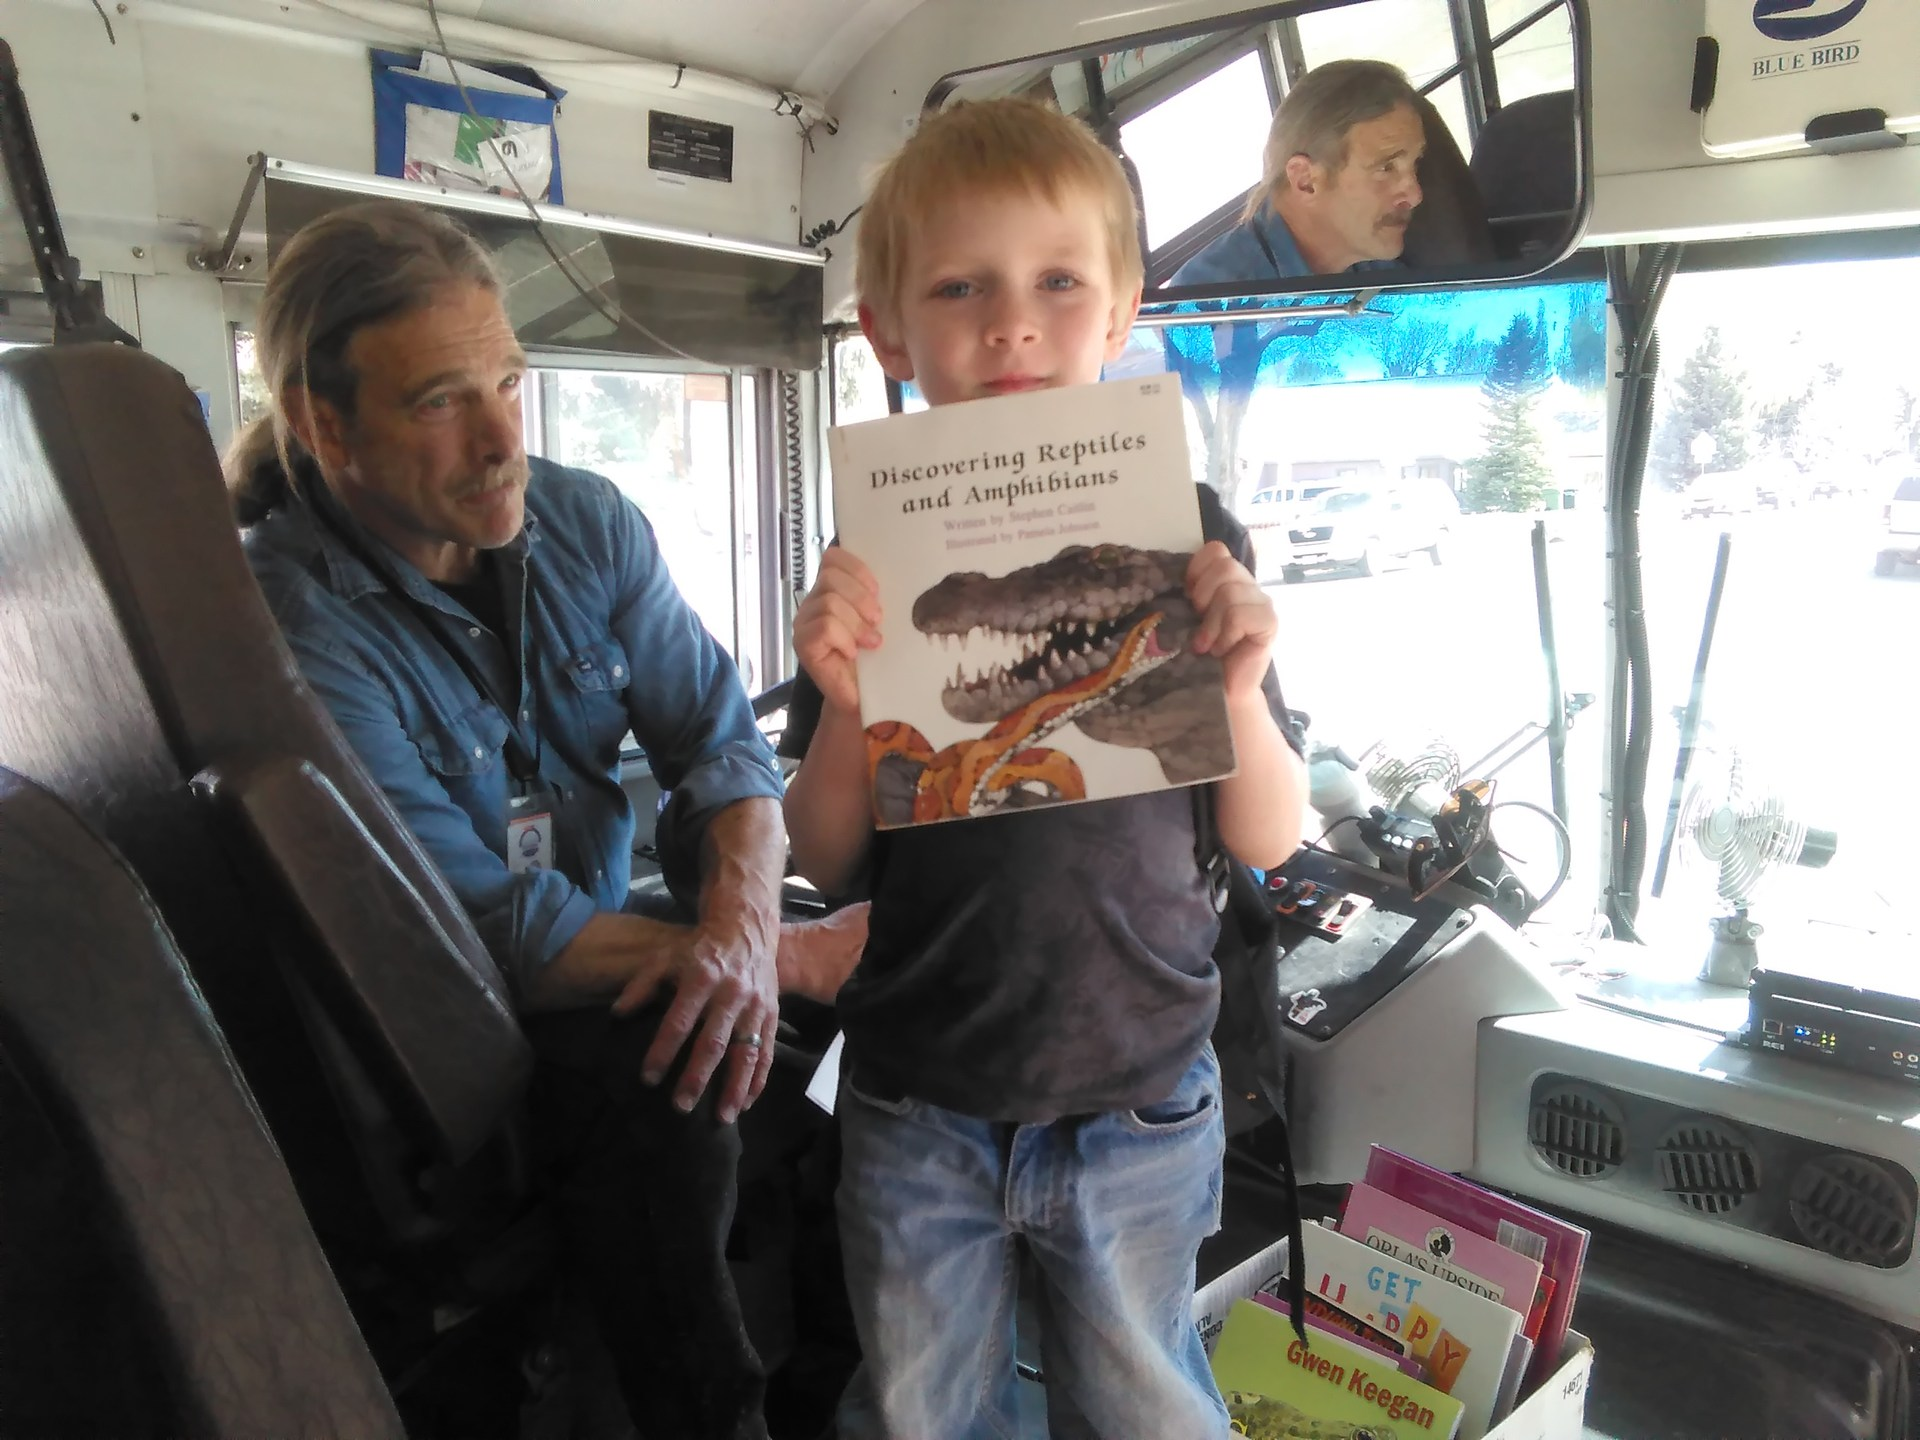 Bus driver Jonas Grushkin encourages students to read on the bus with his Books On Board